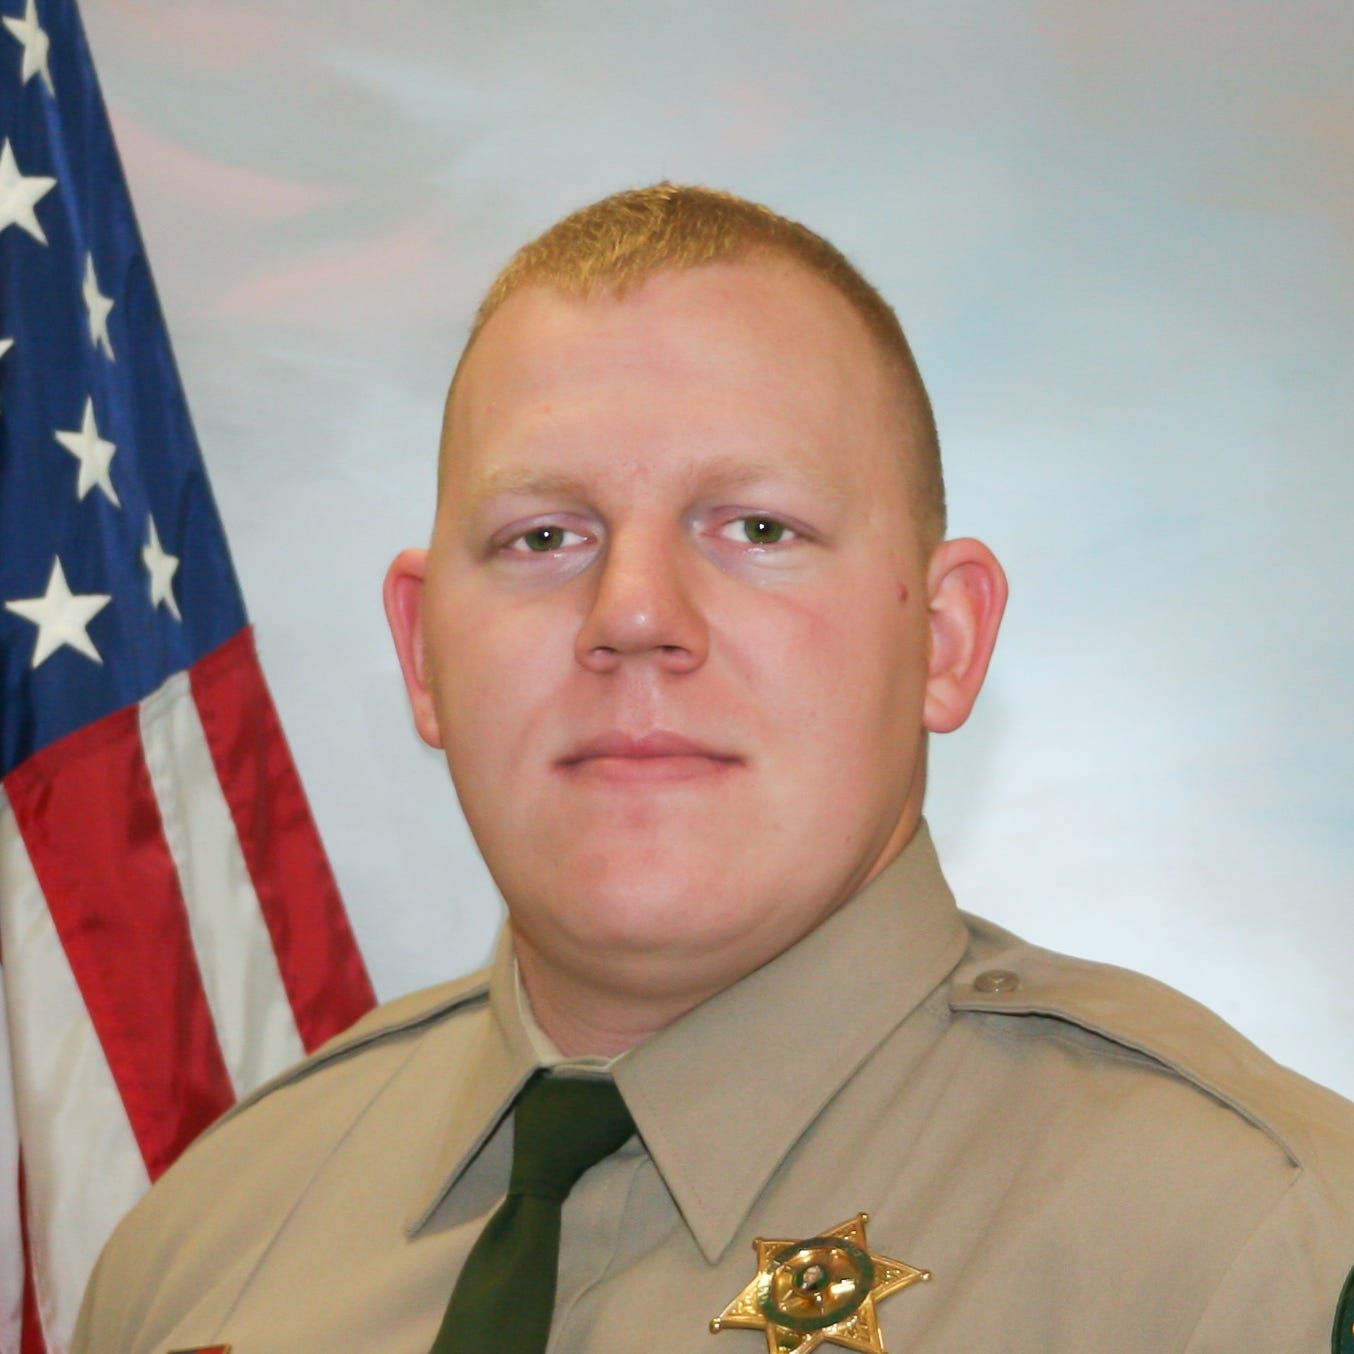 Cowlitz County Deputy Justin DeRosier fatally shot during traffic stop